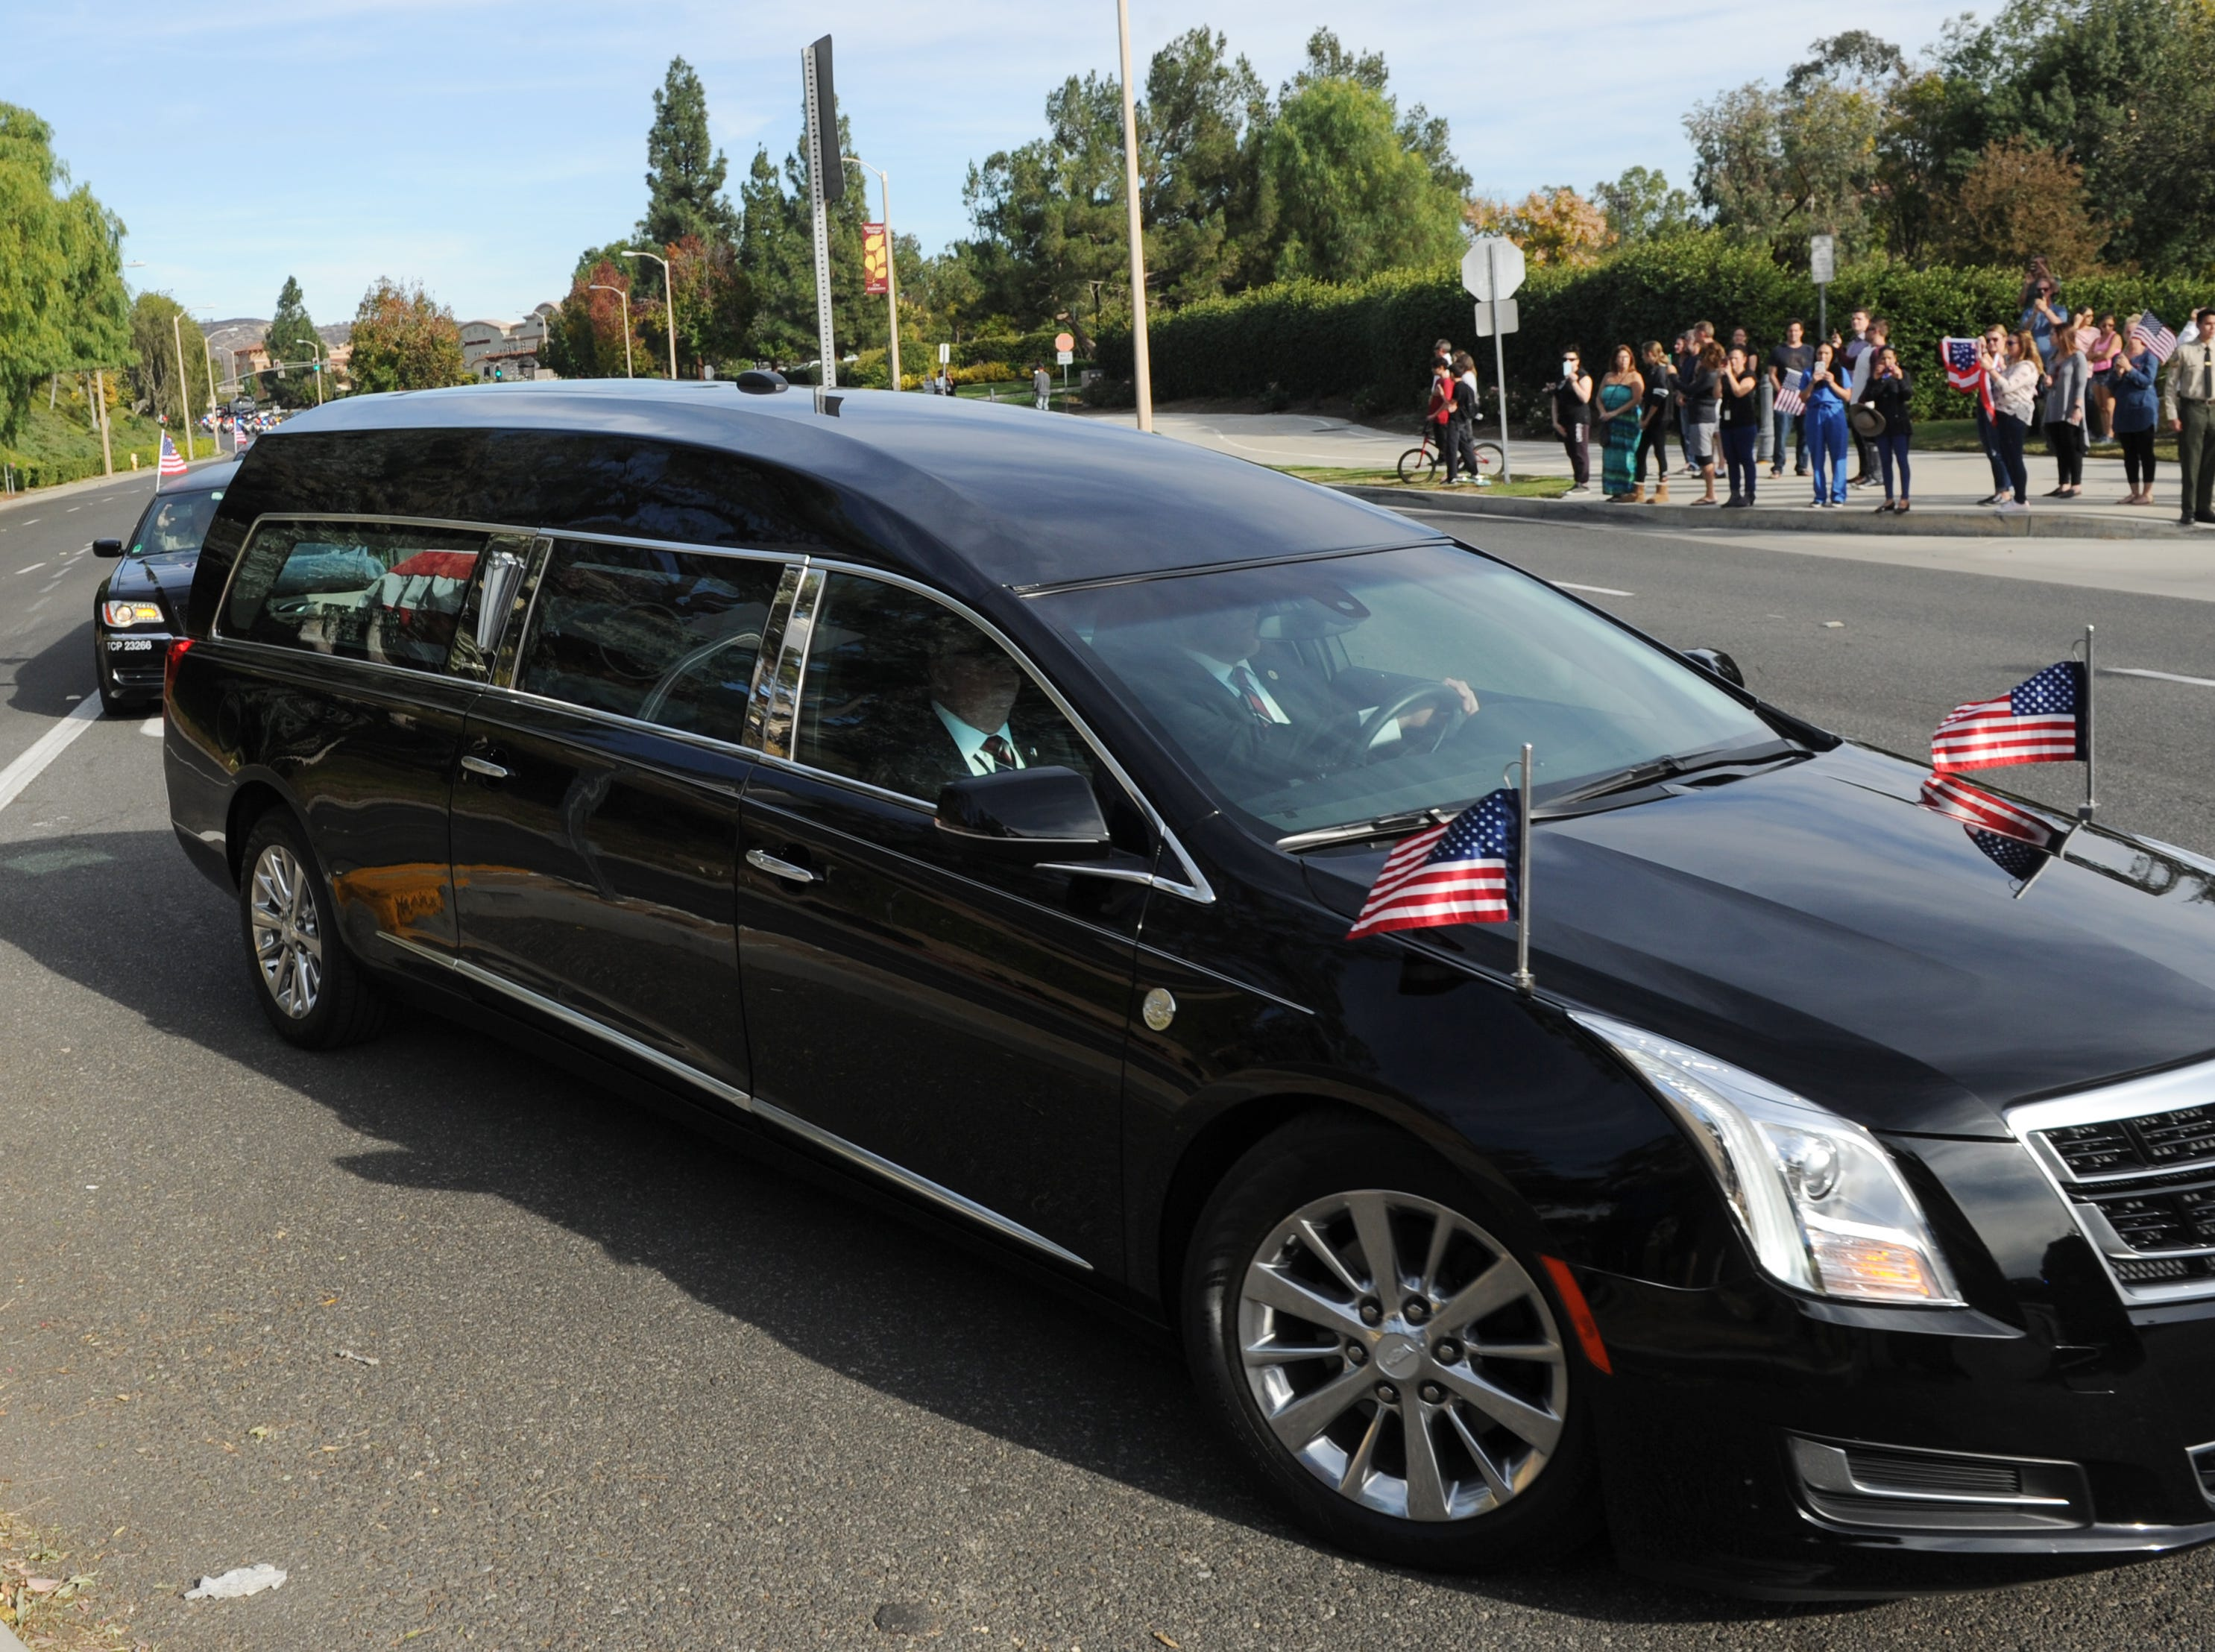 The funeral procession for Ventura County Sheriff's Office Sgt. Ron Helus arrives at Pierce Brothers Valley Oaks Griffin Memorial Park, Mortuary & Crematory.